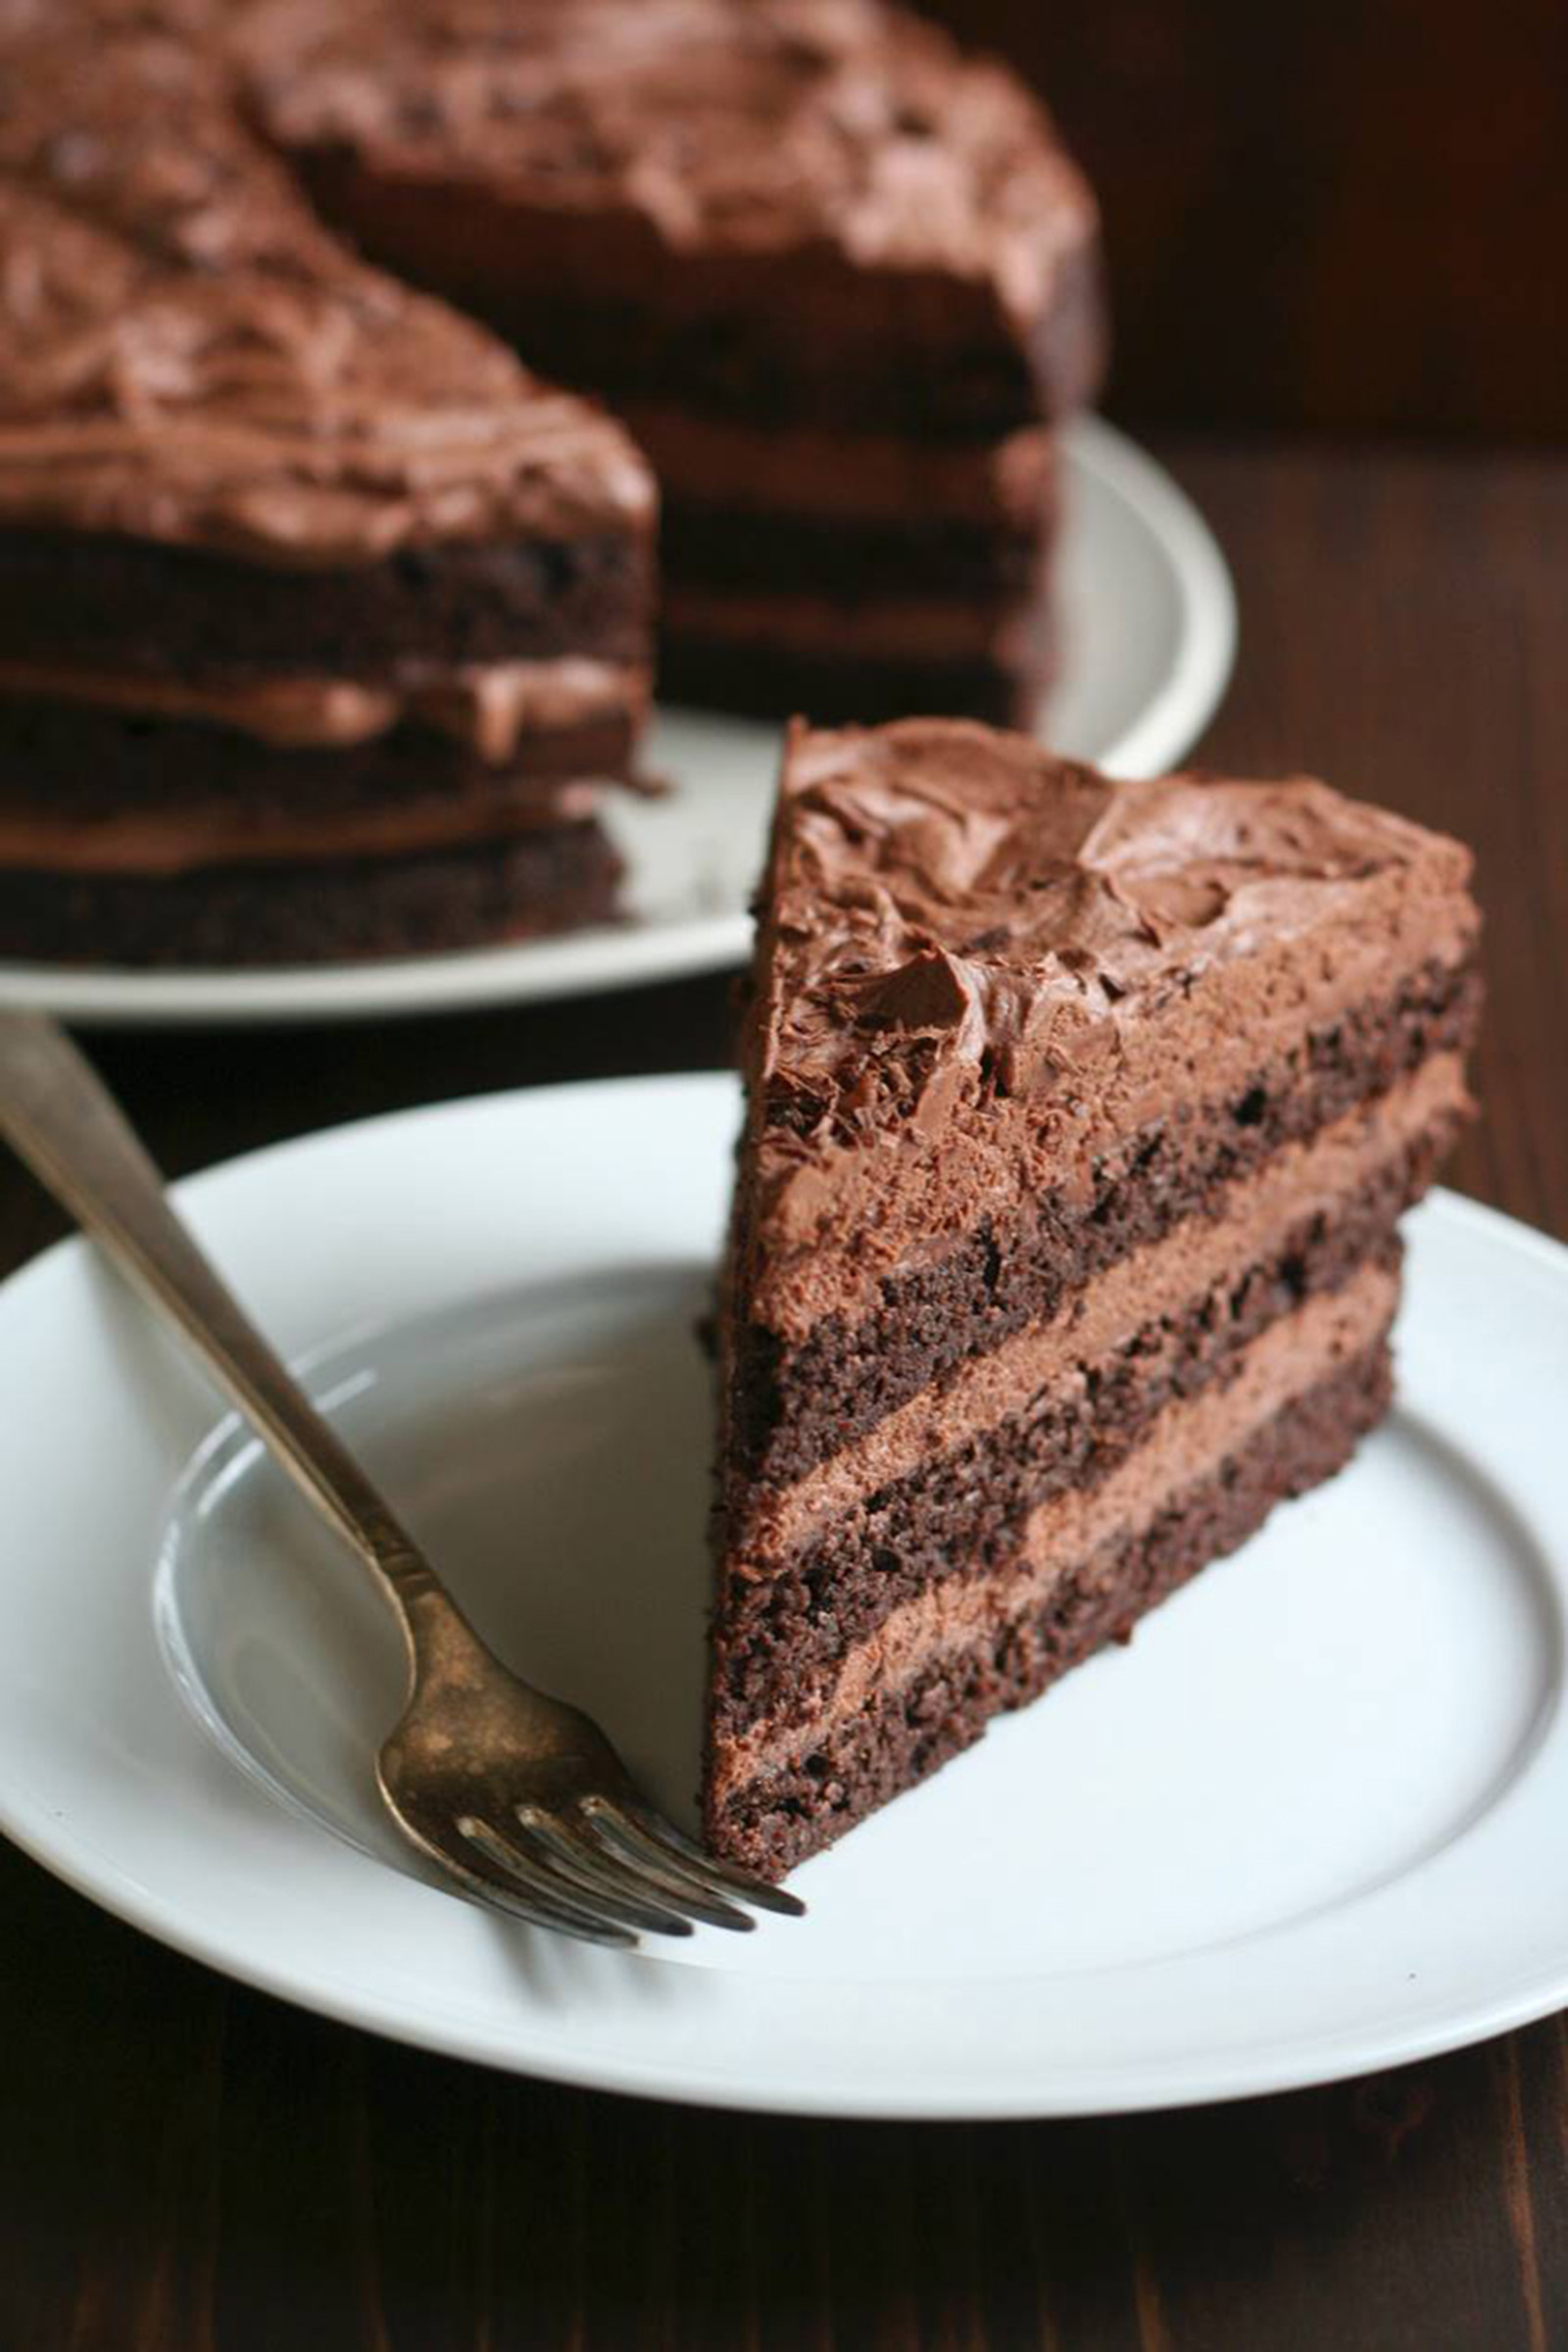 Chocolate Layer Cake with Ganache Frosting